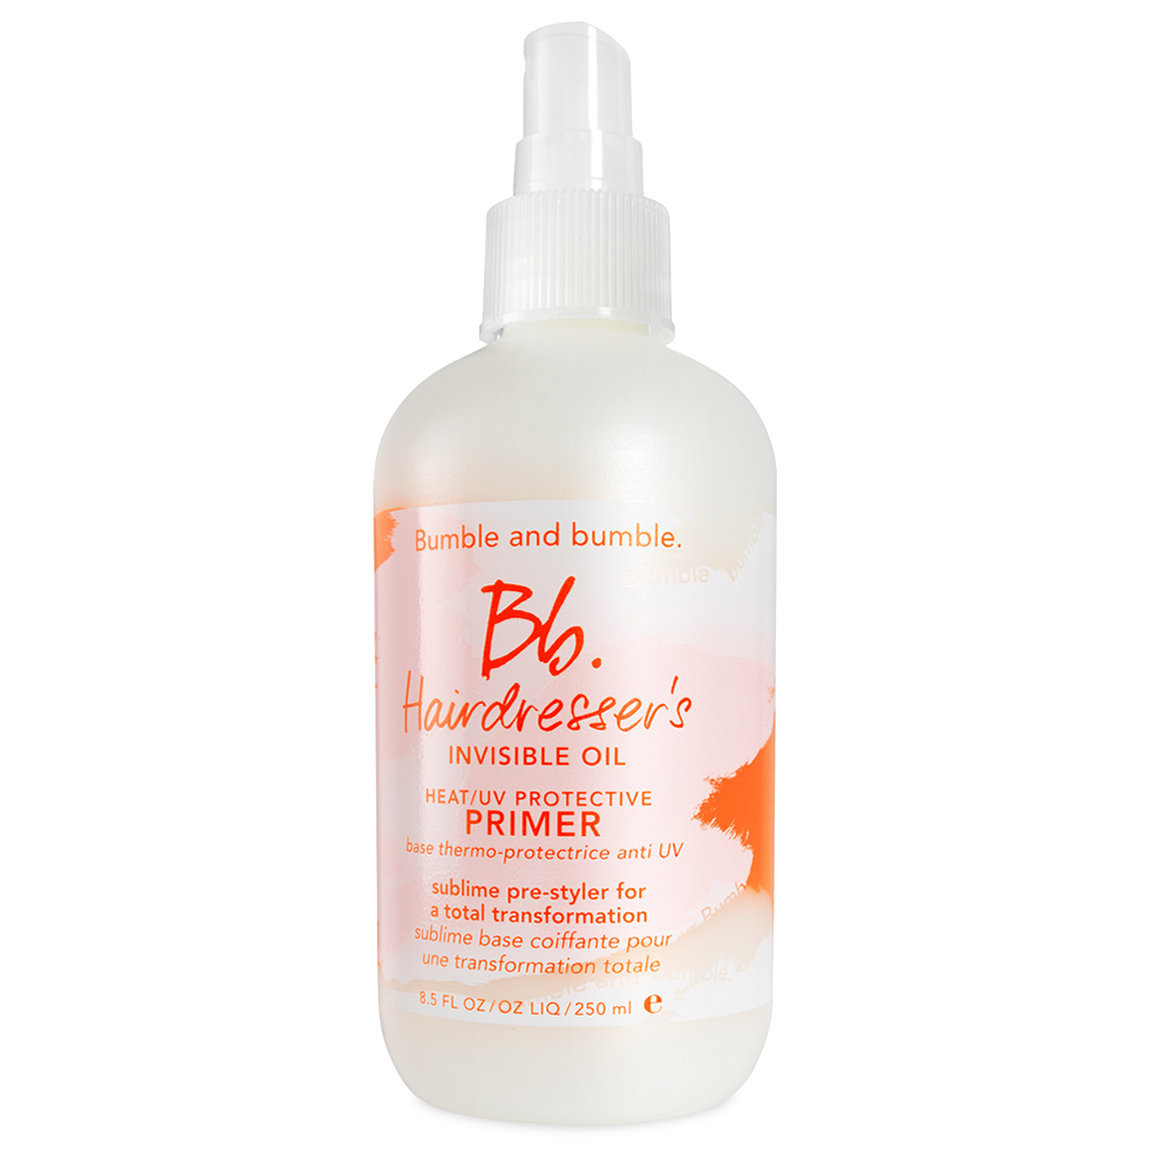 Bumble and bumble. Hairdresser's Invisible Oil Primer alternative view 1.